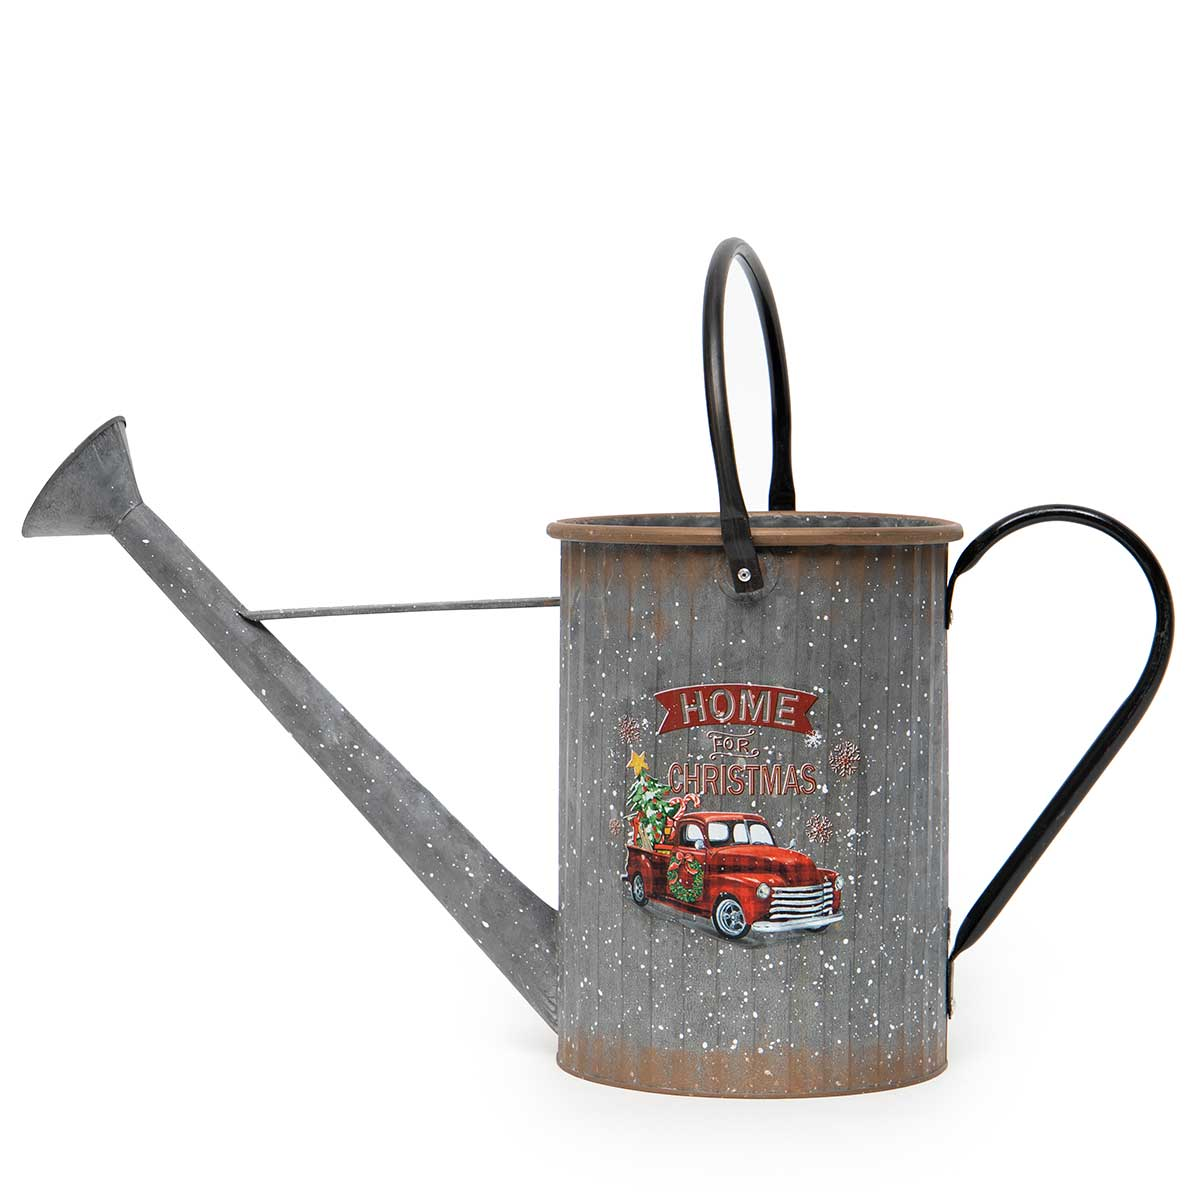 "METAL TRUCK WATERING CAN 22""X10.5""X16.5"""